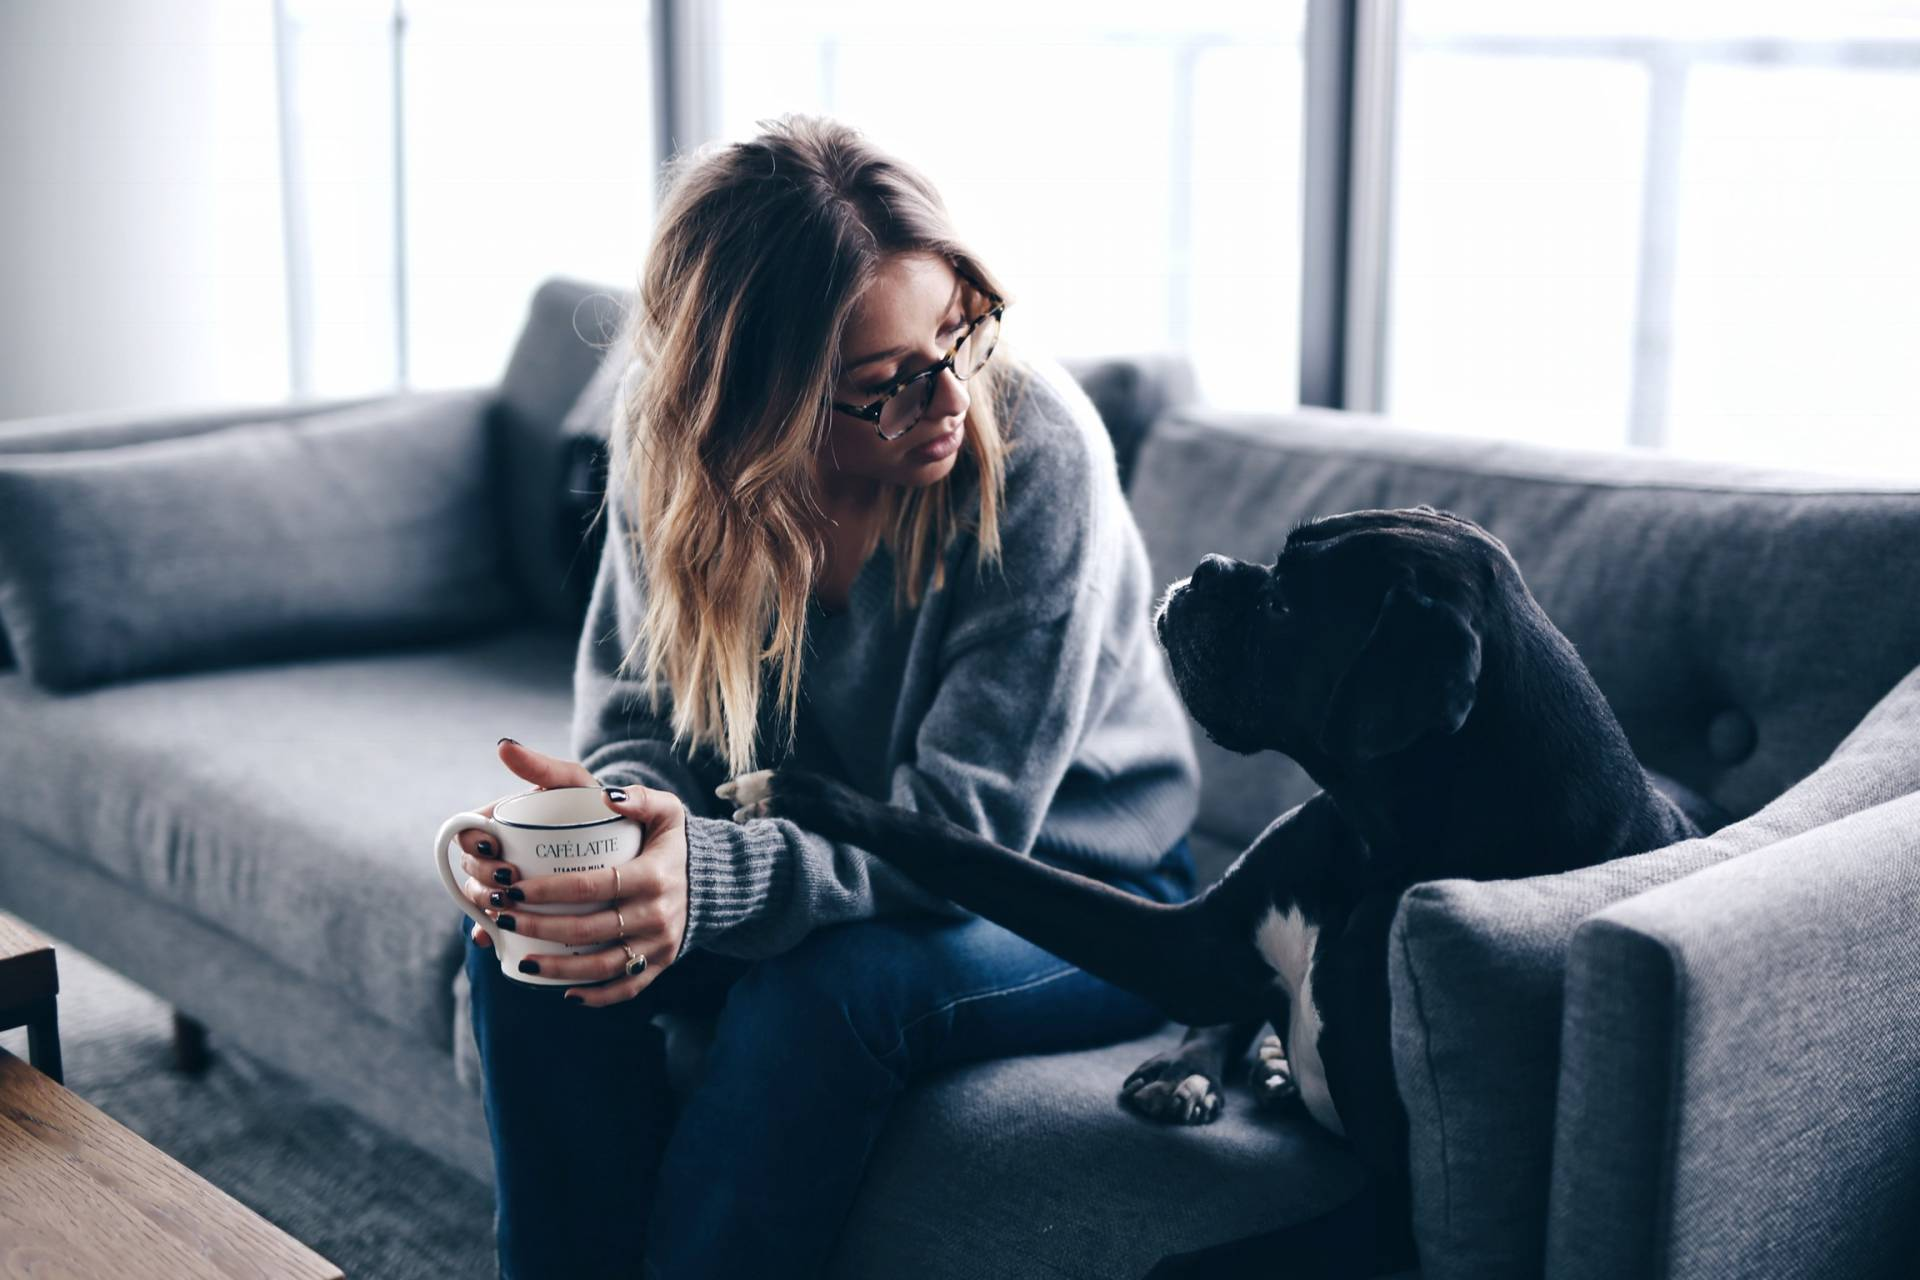 Style and beauty blogger Jill Lansky of The August Diaries shares her simple and minimalist apartment, grey couch, bonlook glasses, black boxer